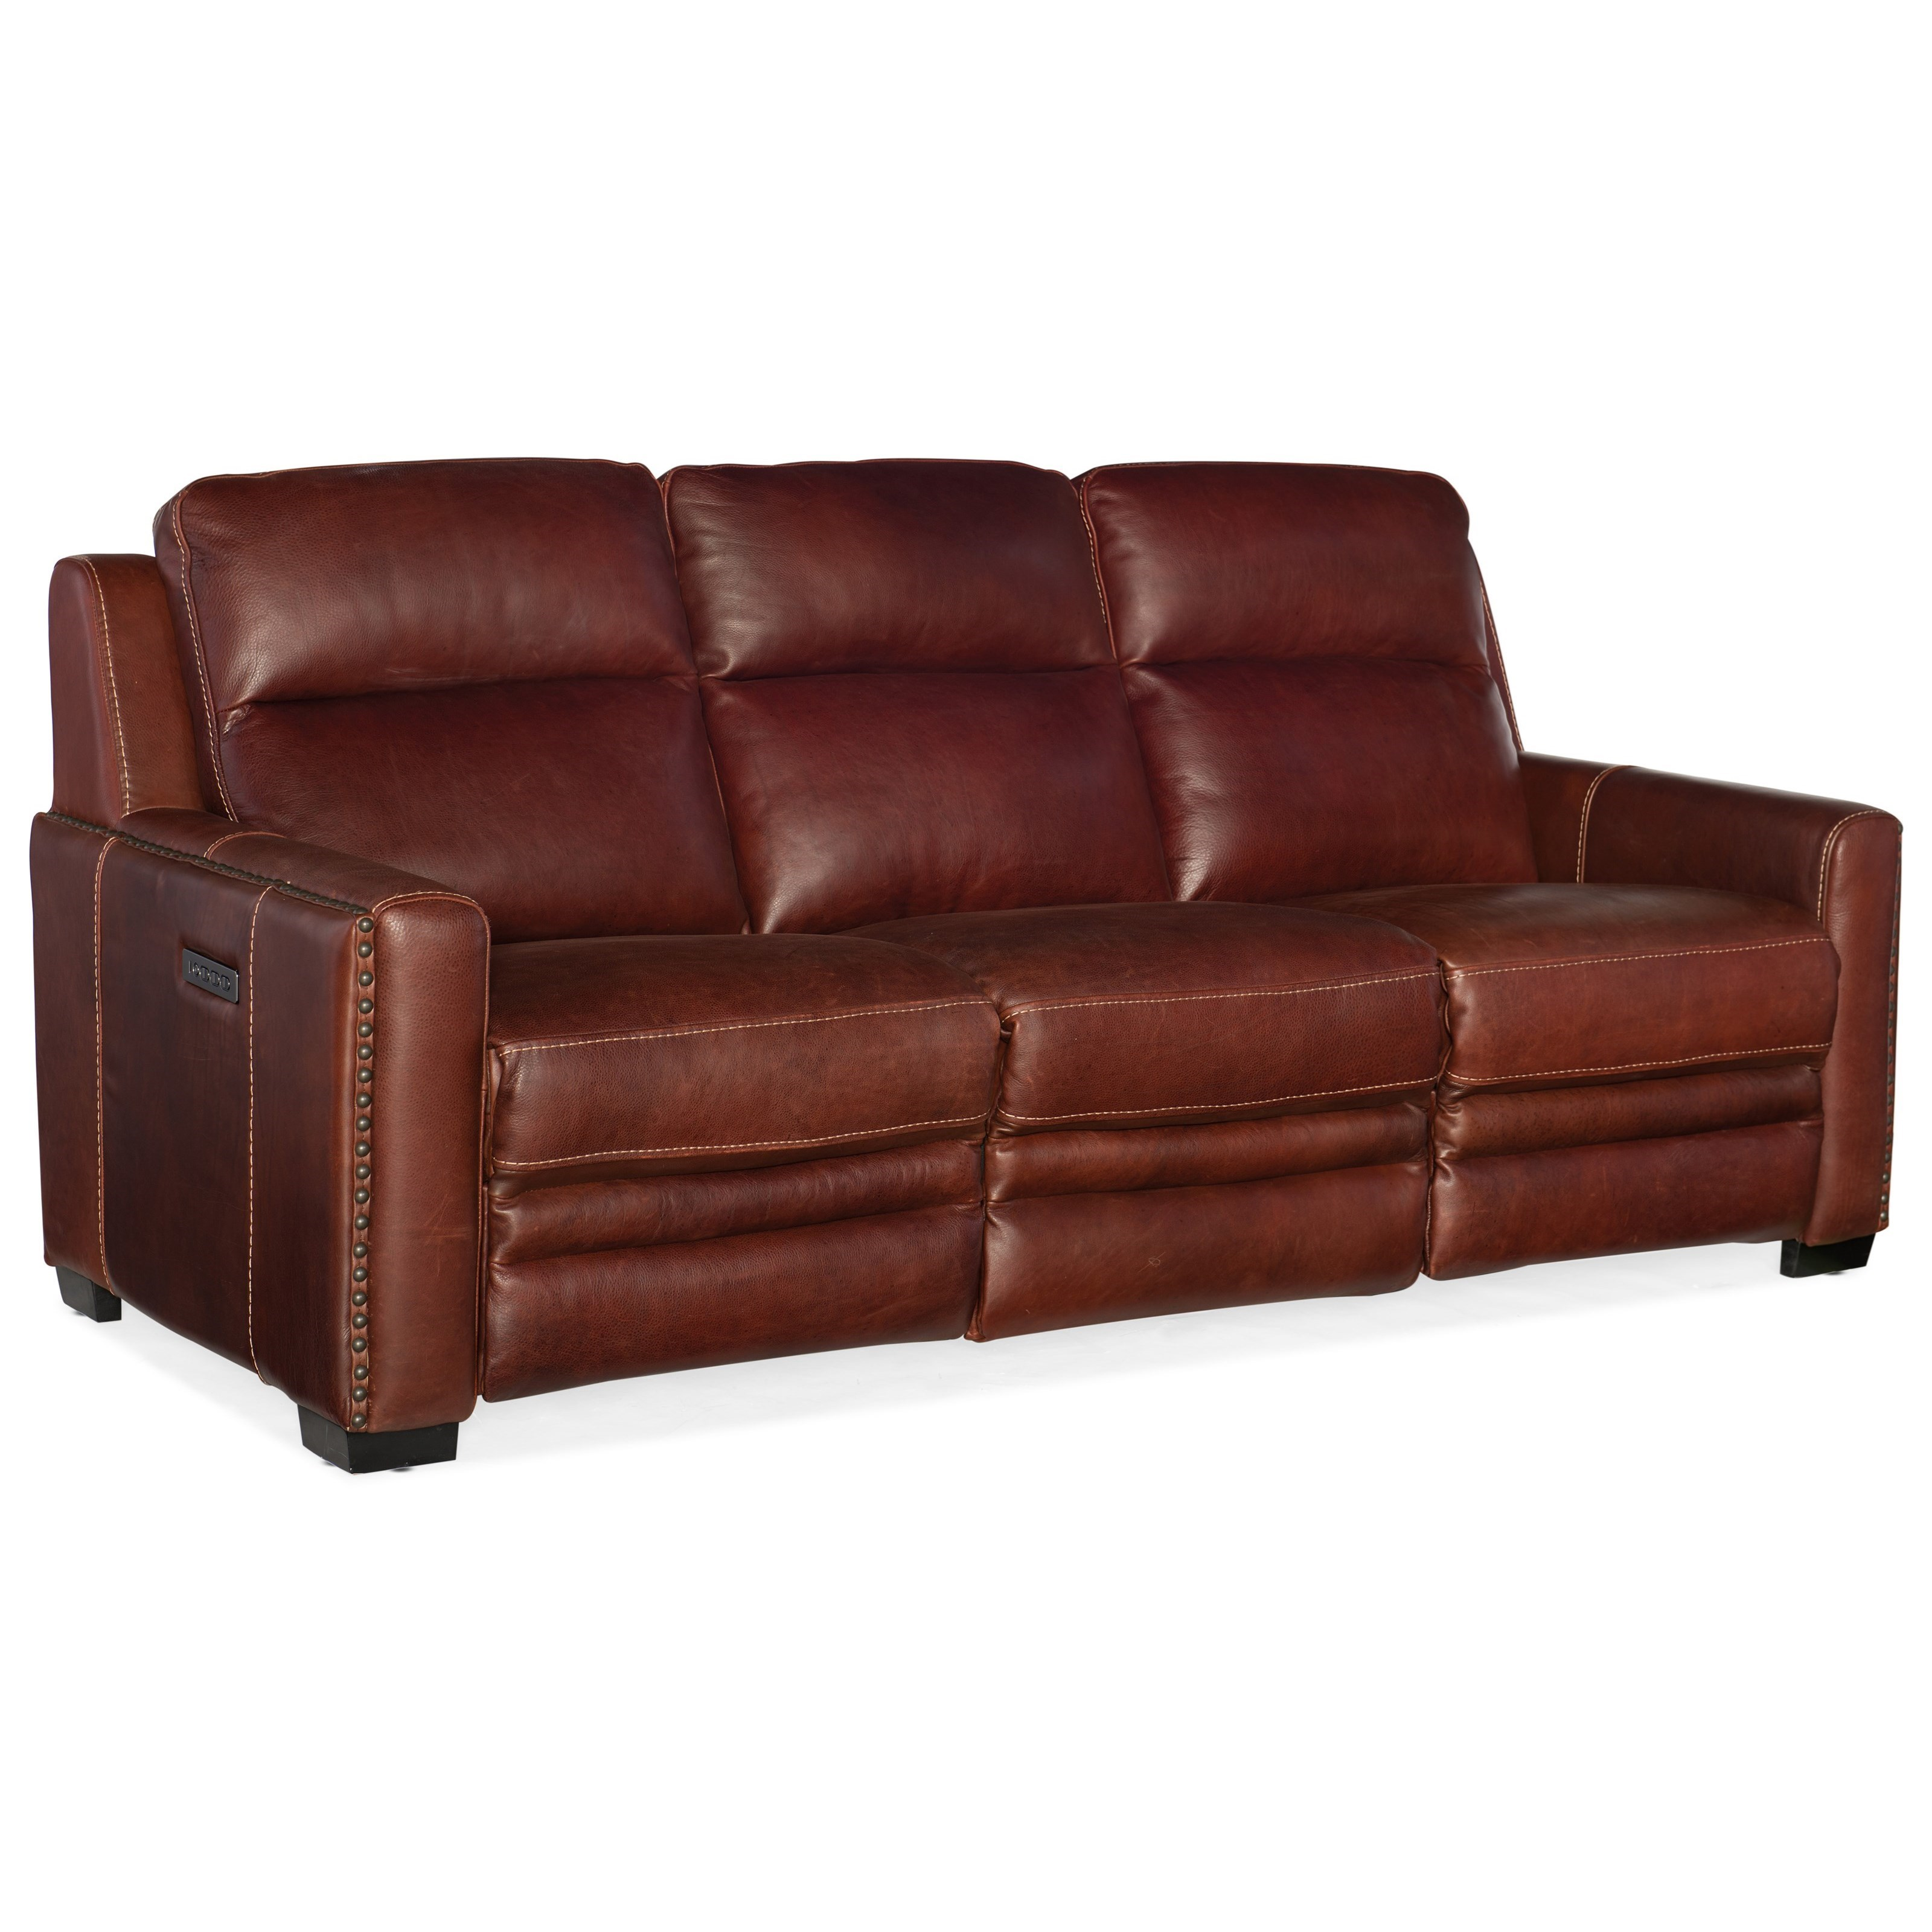 Hooker Furniture Lincoln Transitional Leather Power Reclining Sofa With  Power Headrest U0026 Power Lumbar Support